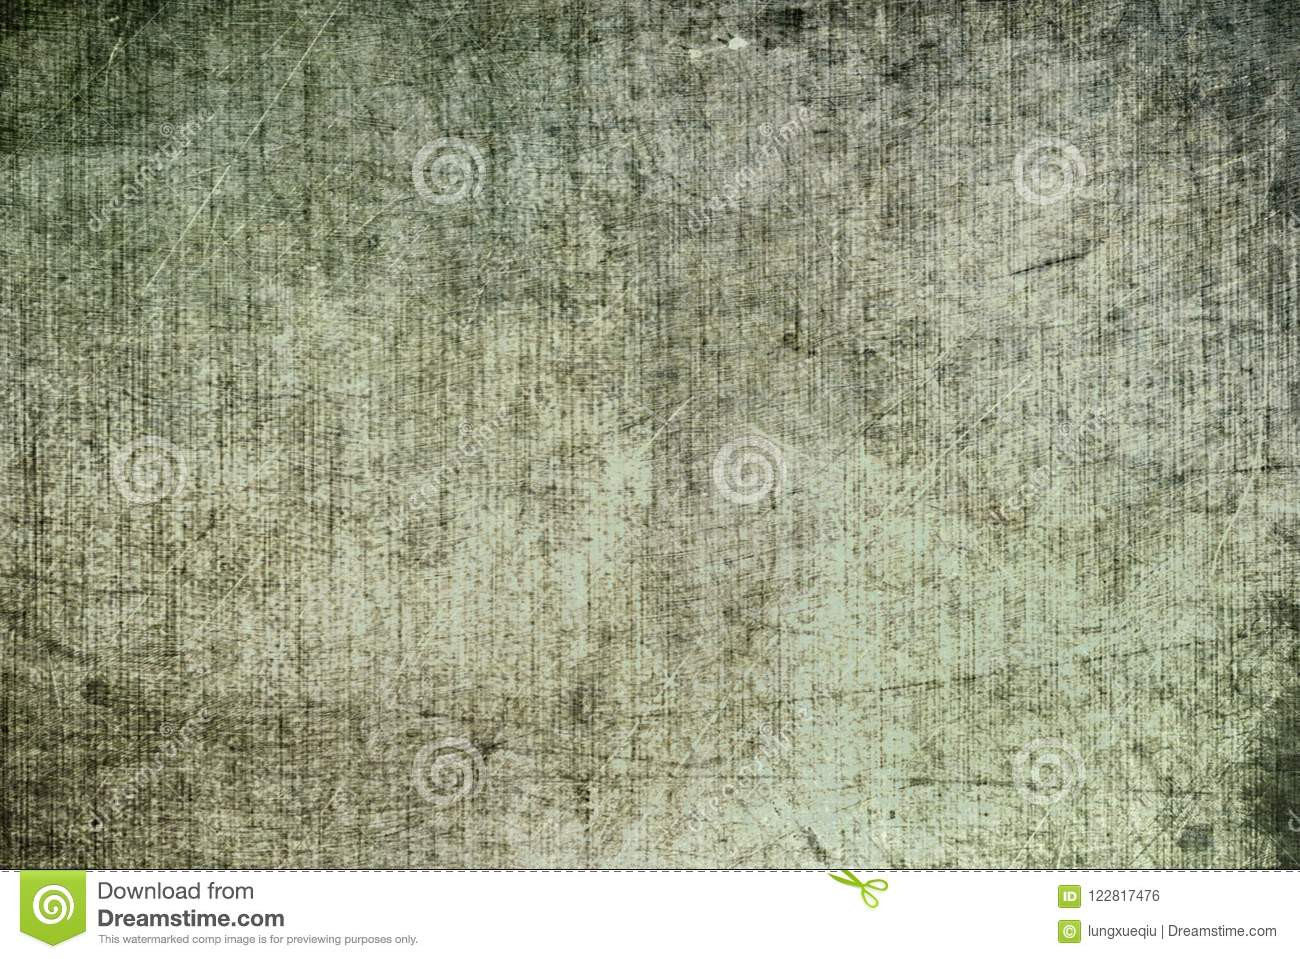 Grunge Dark Grey Black White Rusty Distorted Decay Old Abstract